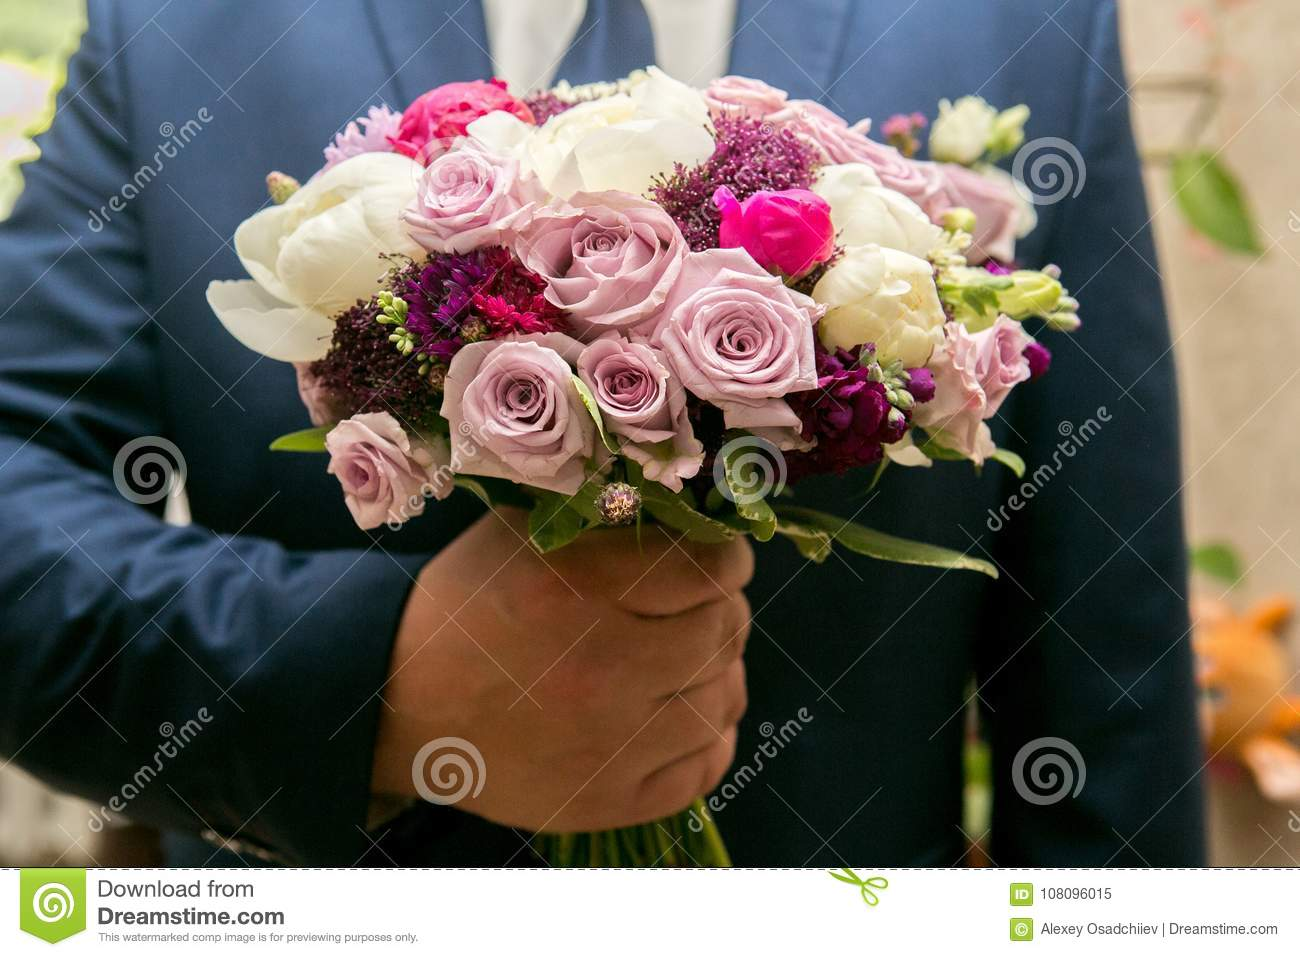 Man With Flower Bouquet Stock Image Image Of Garden 108096015